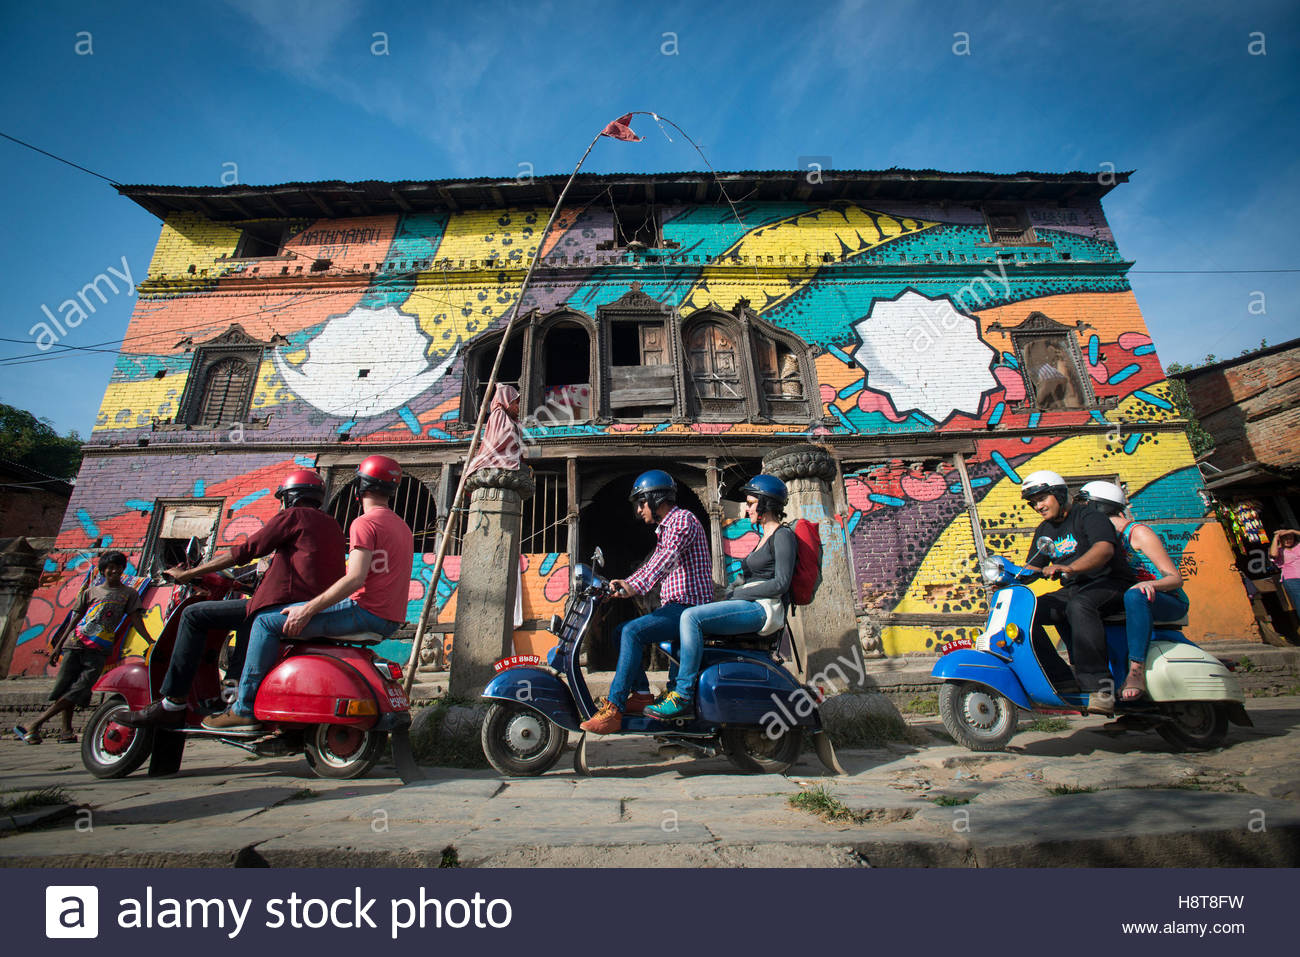 A group of tourists on scooters outside a brightly painted mural on a building in Kathmandu in Nepal - Stock Image